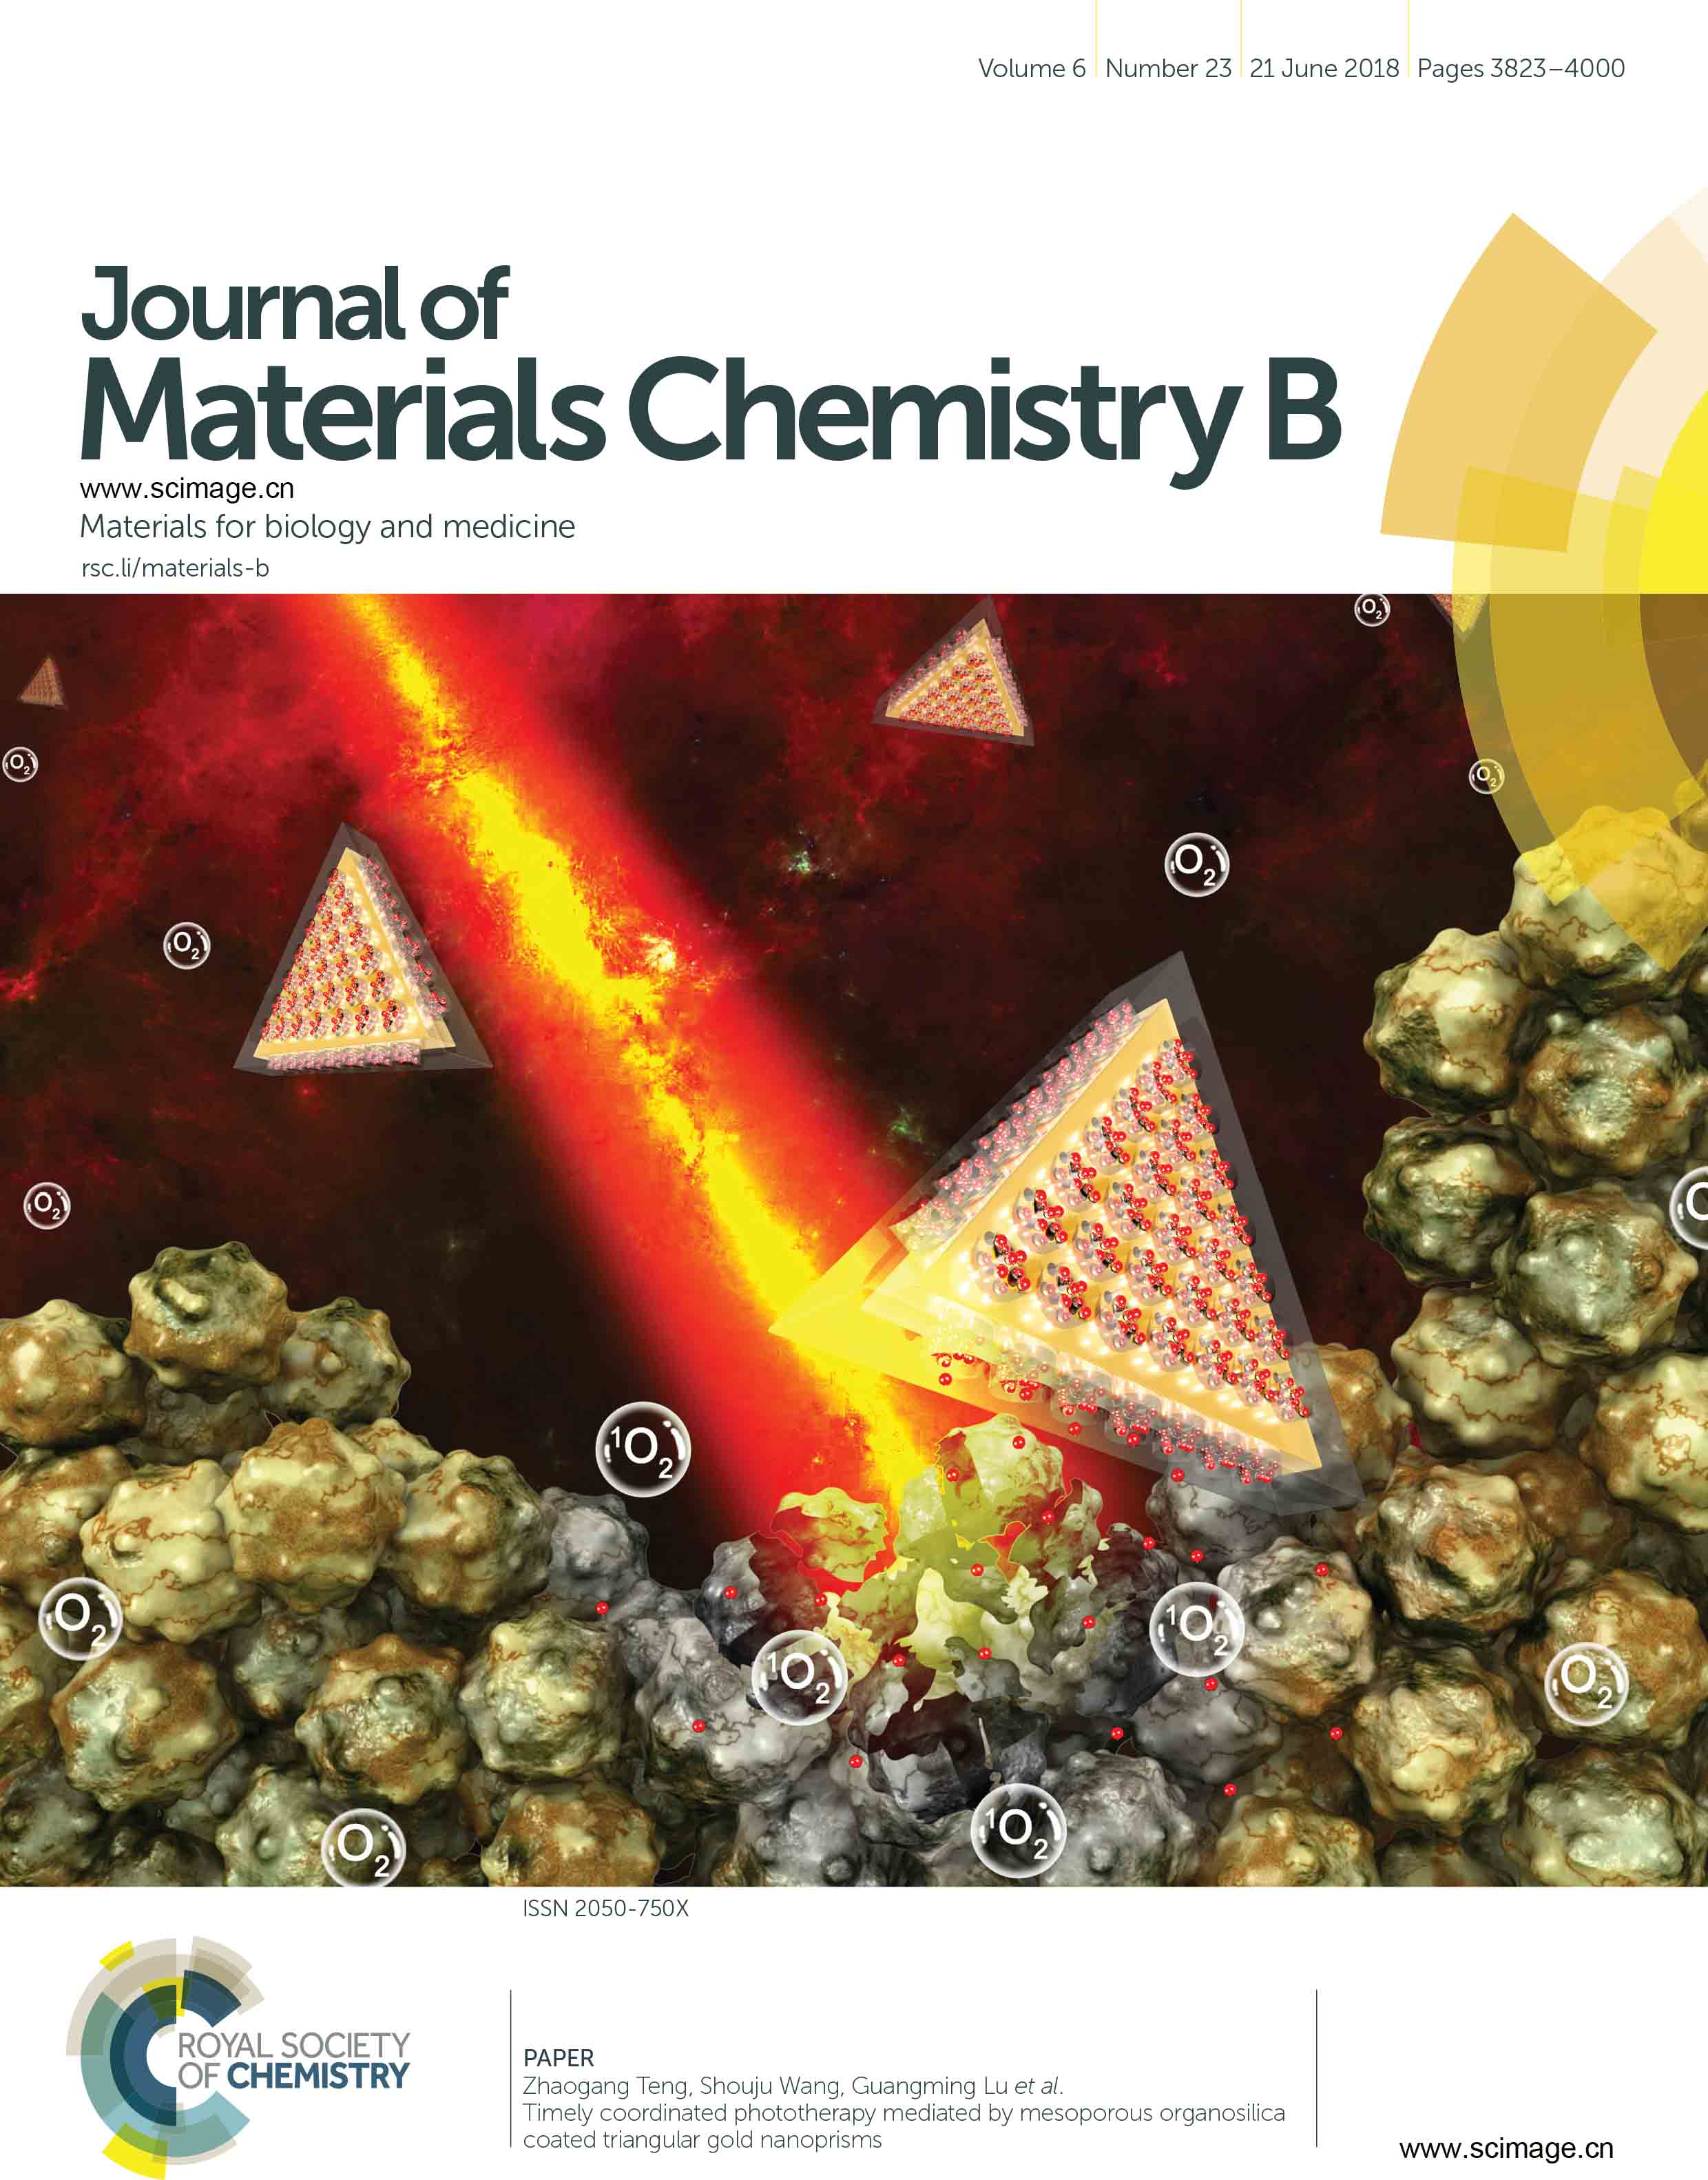 Timely coordinated phototherapy mediated by mesoporous organosilica coated triangular gold nanoprisms